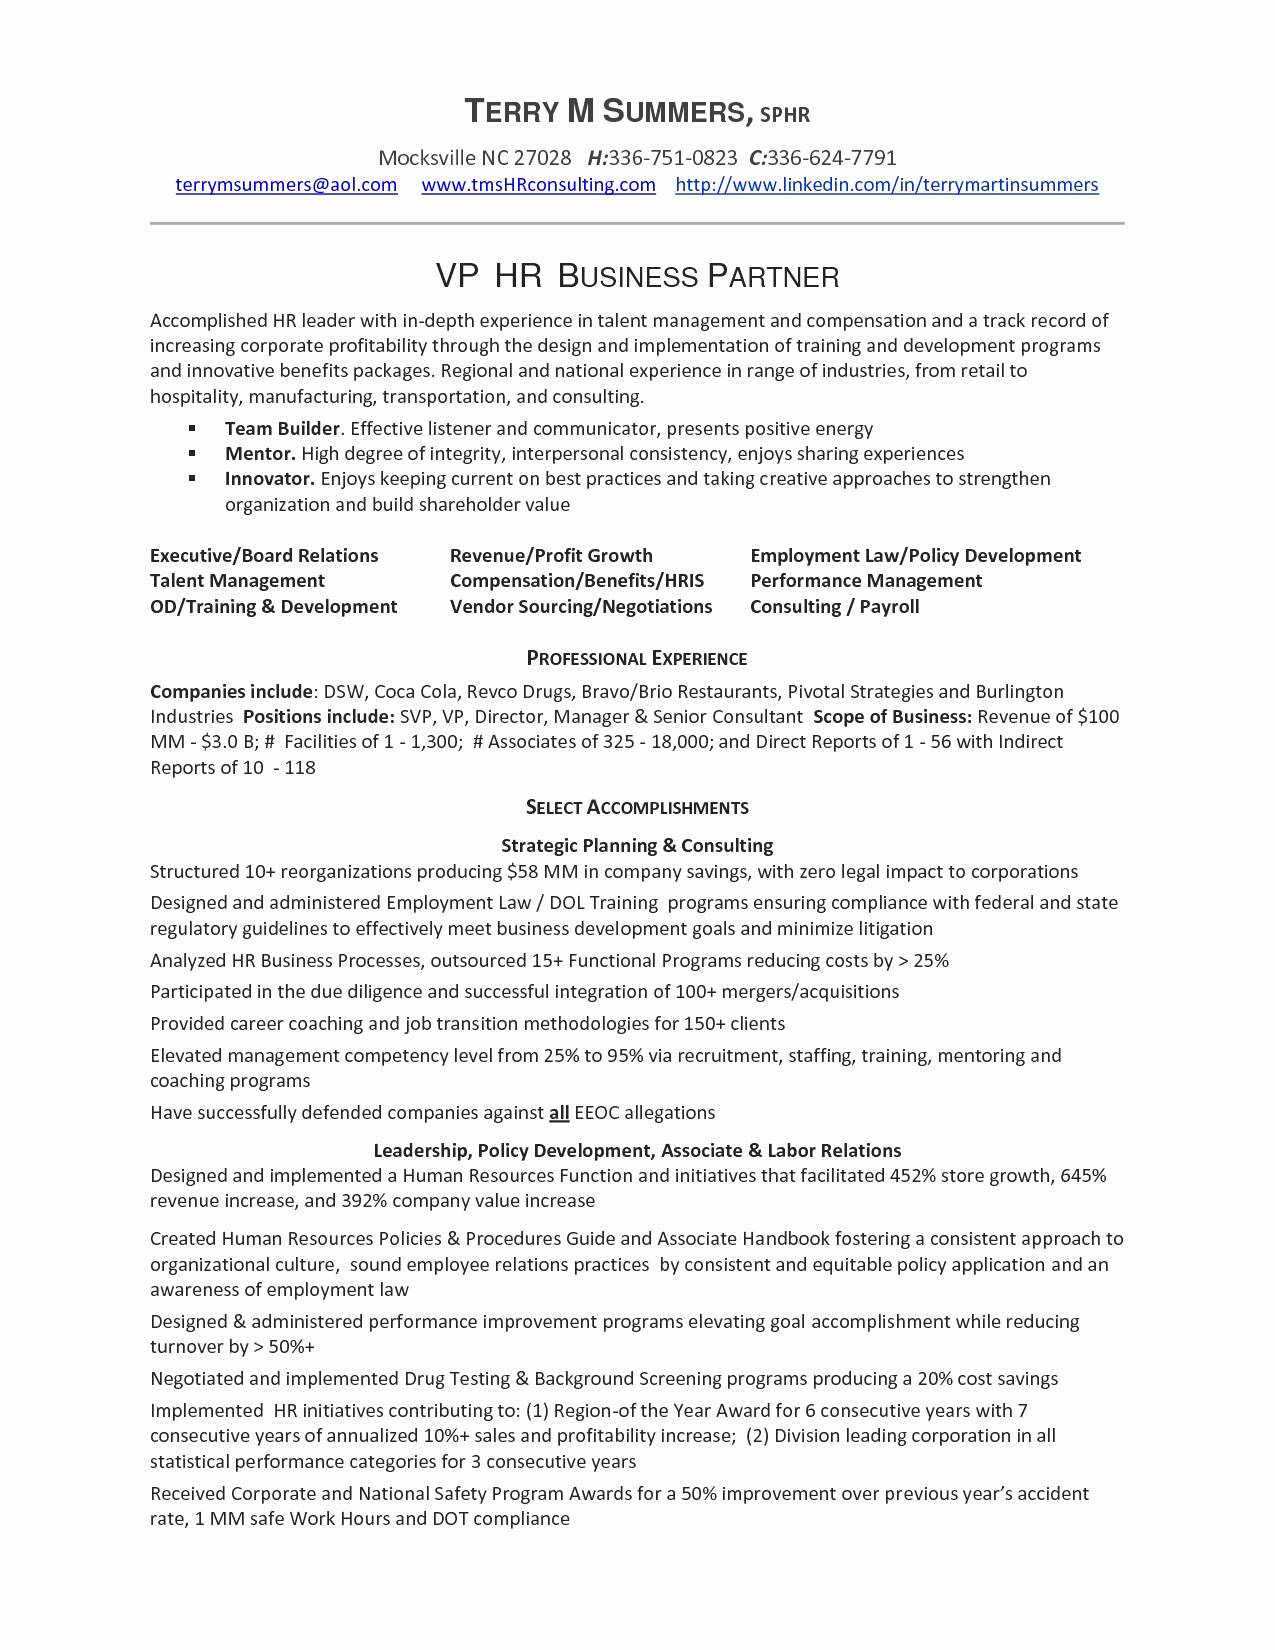 legal advice disclaimer template - writing a business letter template examples letter cover